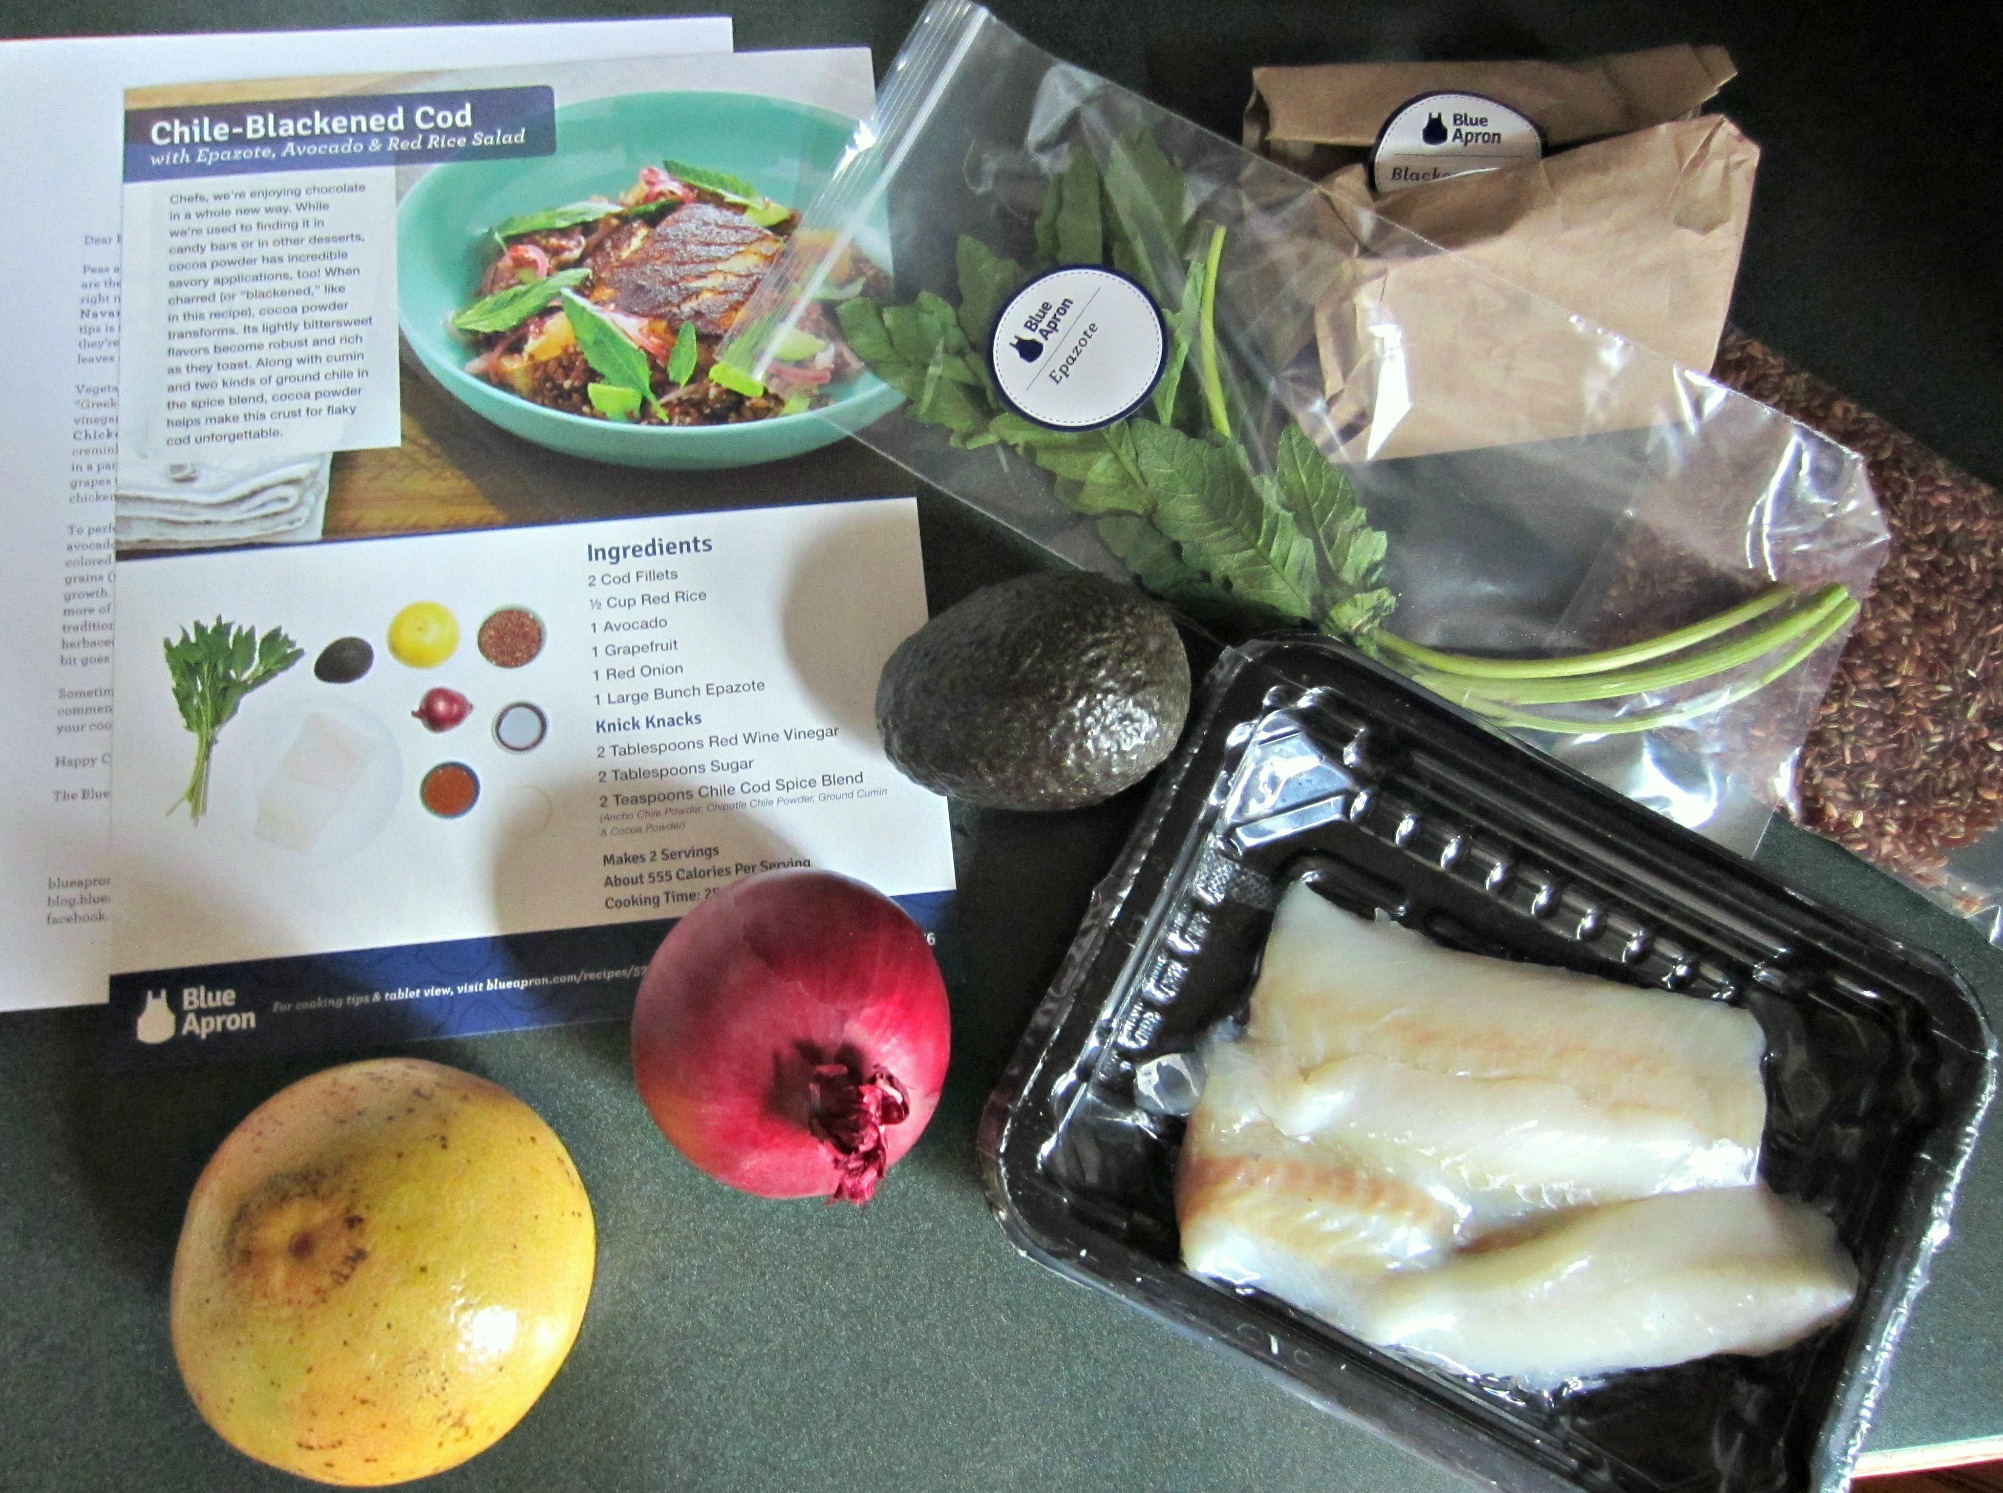 Blue Apron meal recipe and ingredients